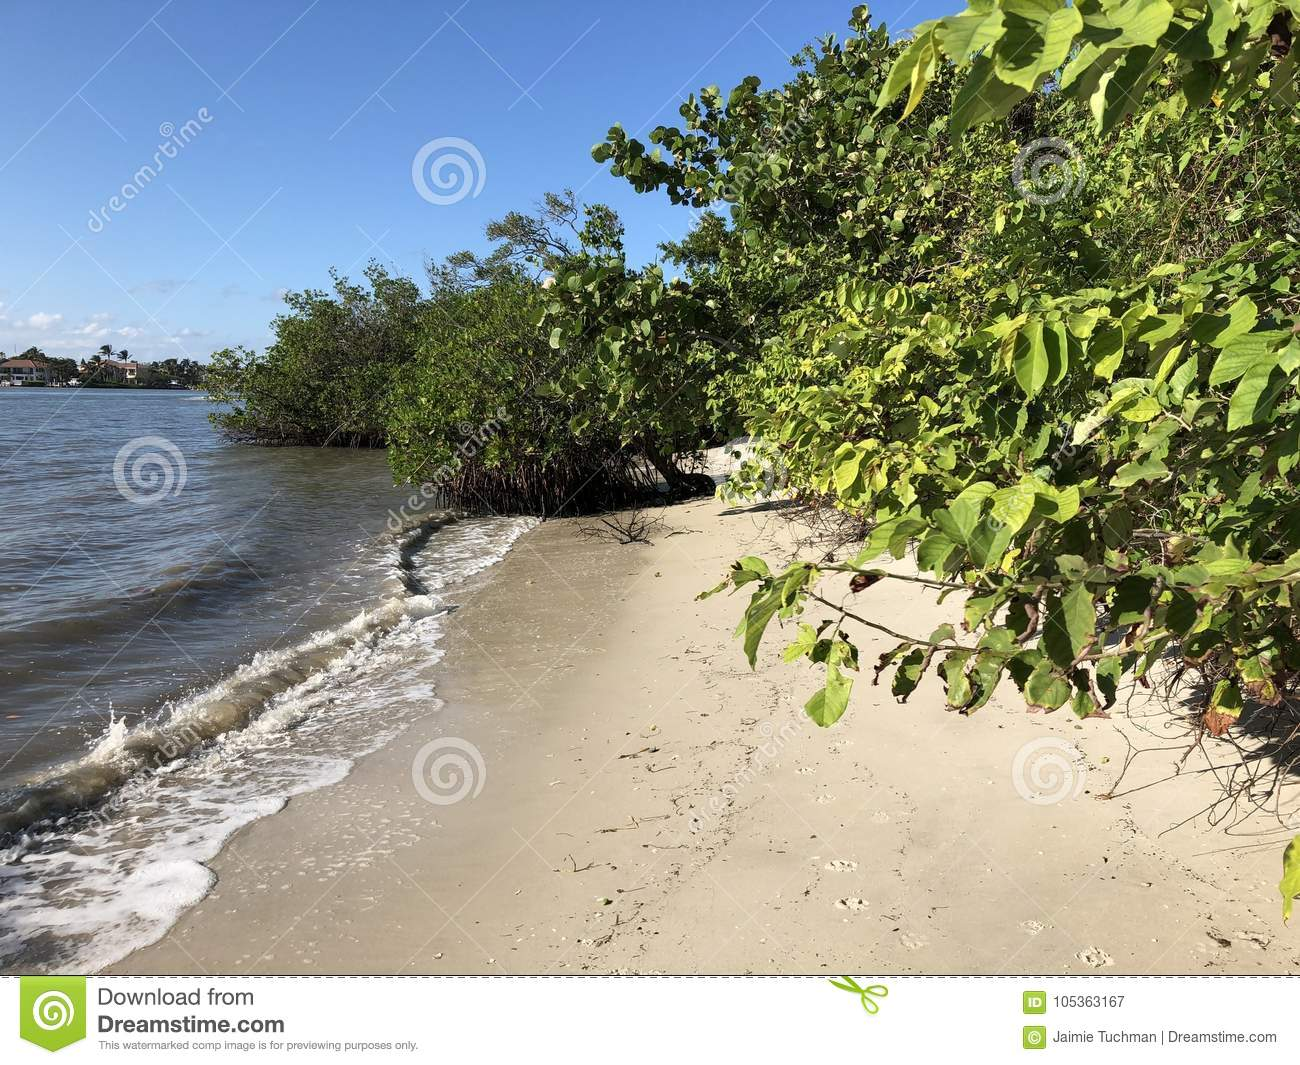 Tropical Trees On A Secluded Beach Stock Image - Image of caribbean